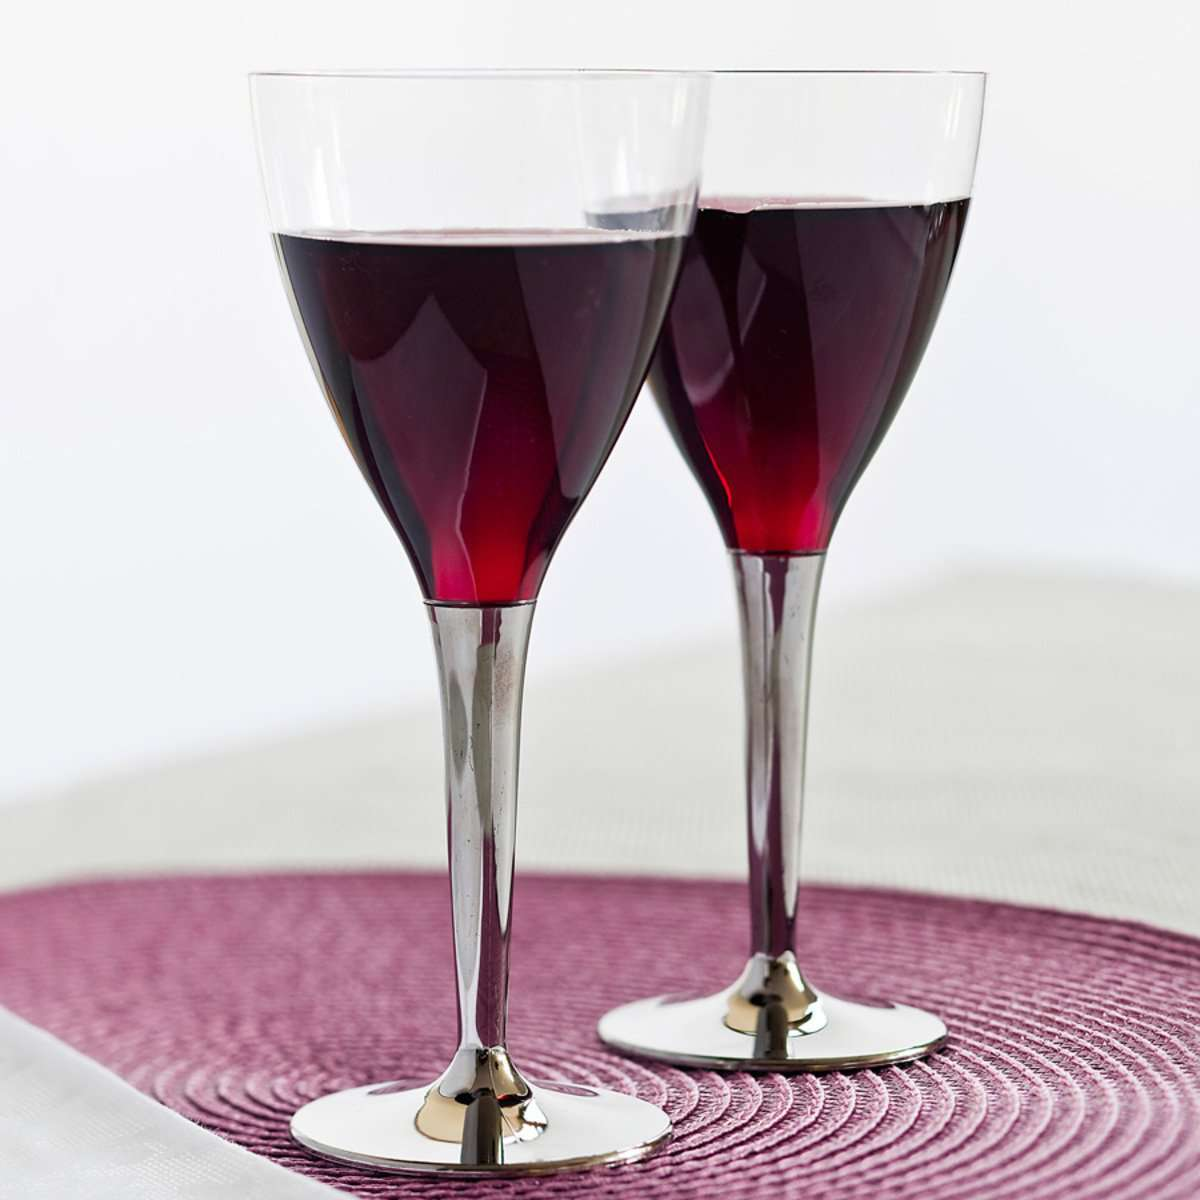 Mozaik 100 Disposable Plastic Wine Glasses with Silver StemMozaik 100 Disposable Plastic Wine Glasses with Silver Stem